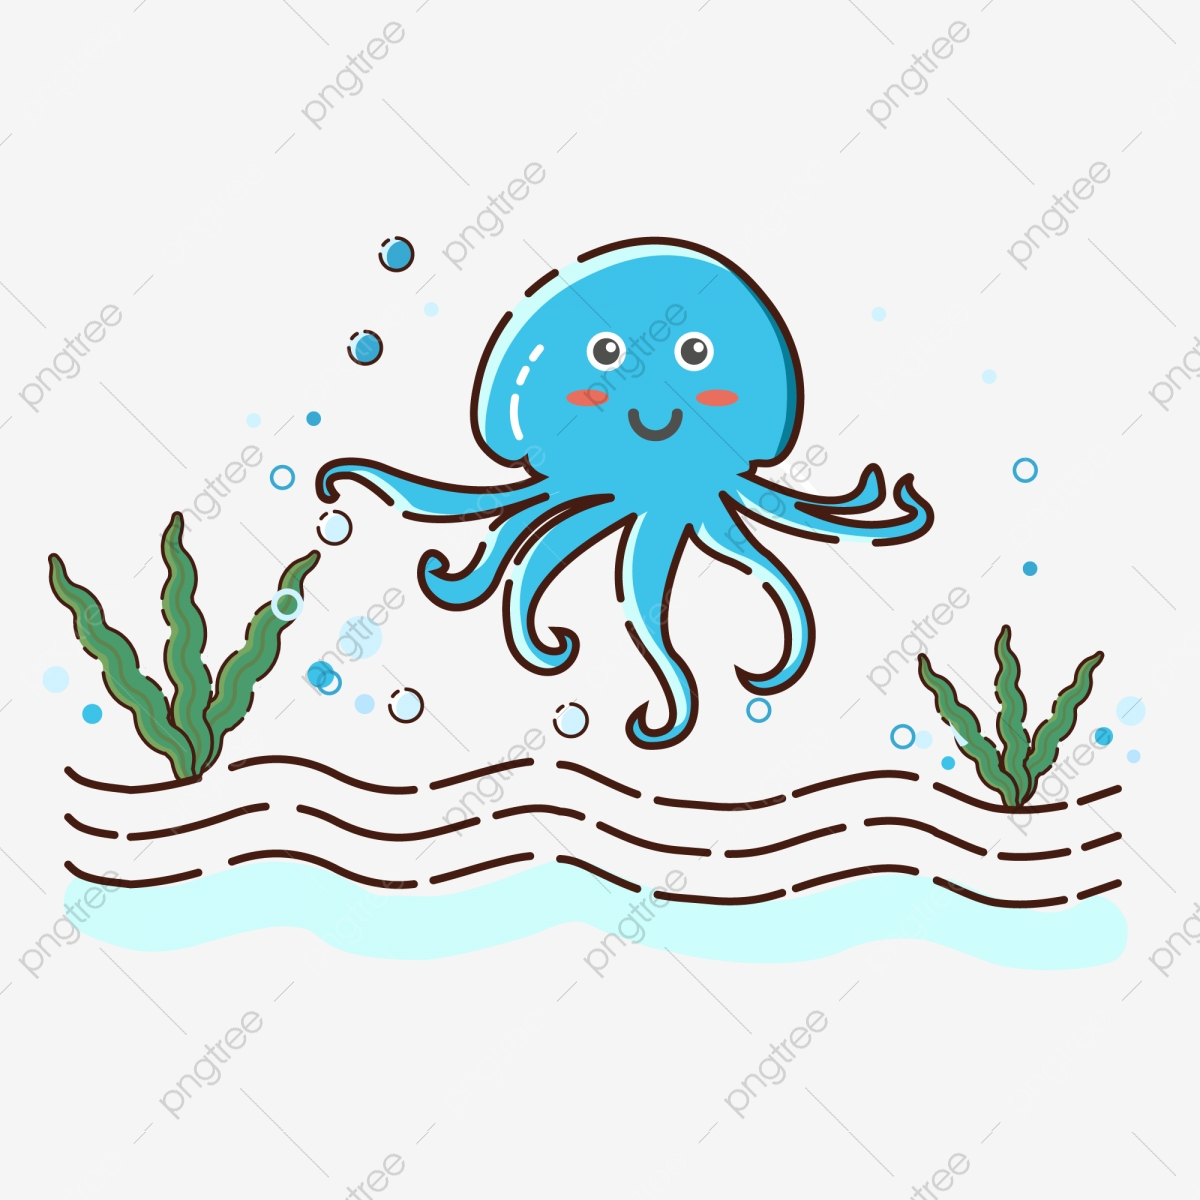 hight resolution of commercial use resource upgrade to premium plan and get license authorization upgradenow octopus octopus clipart